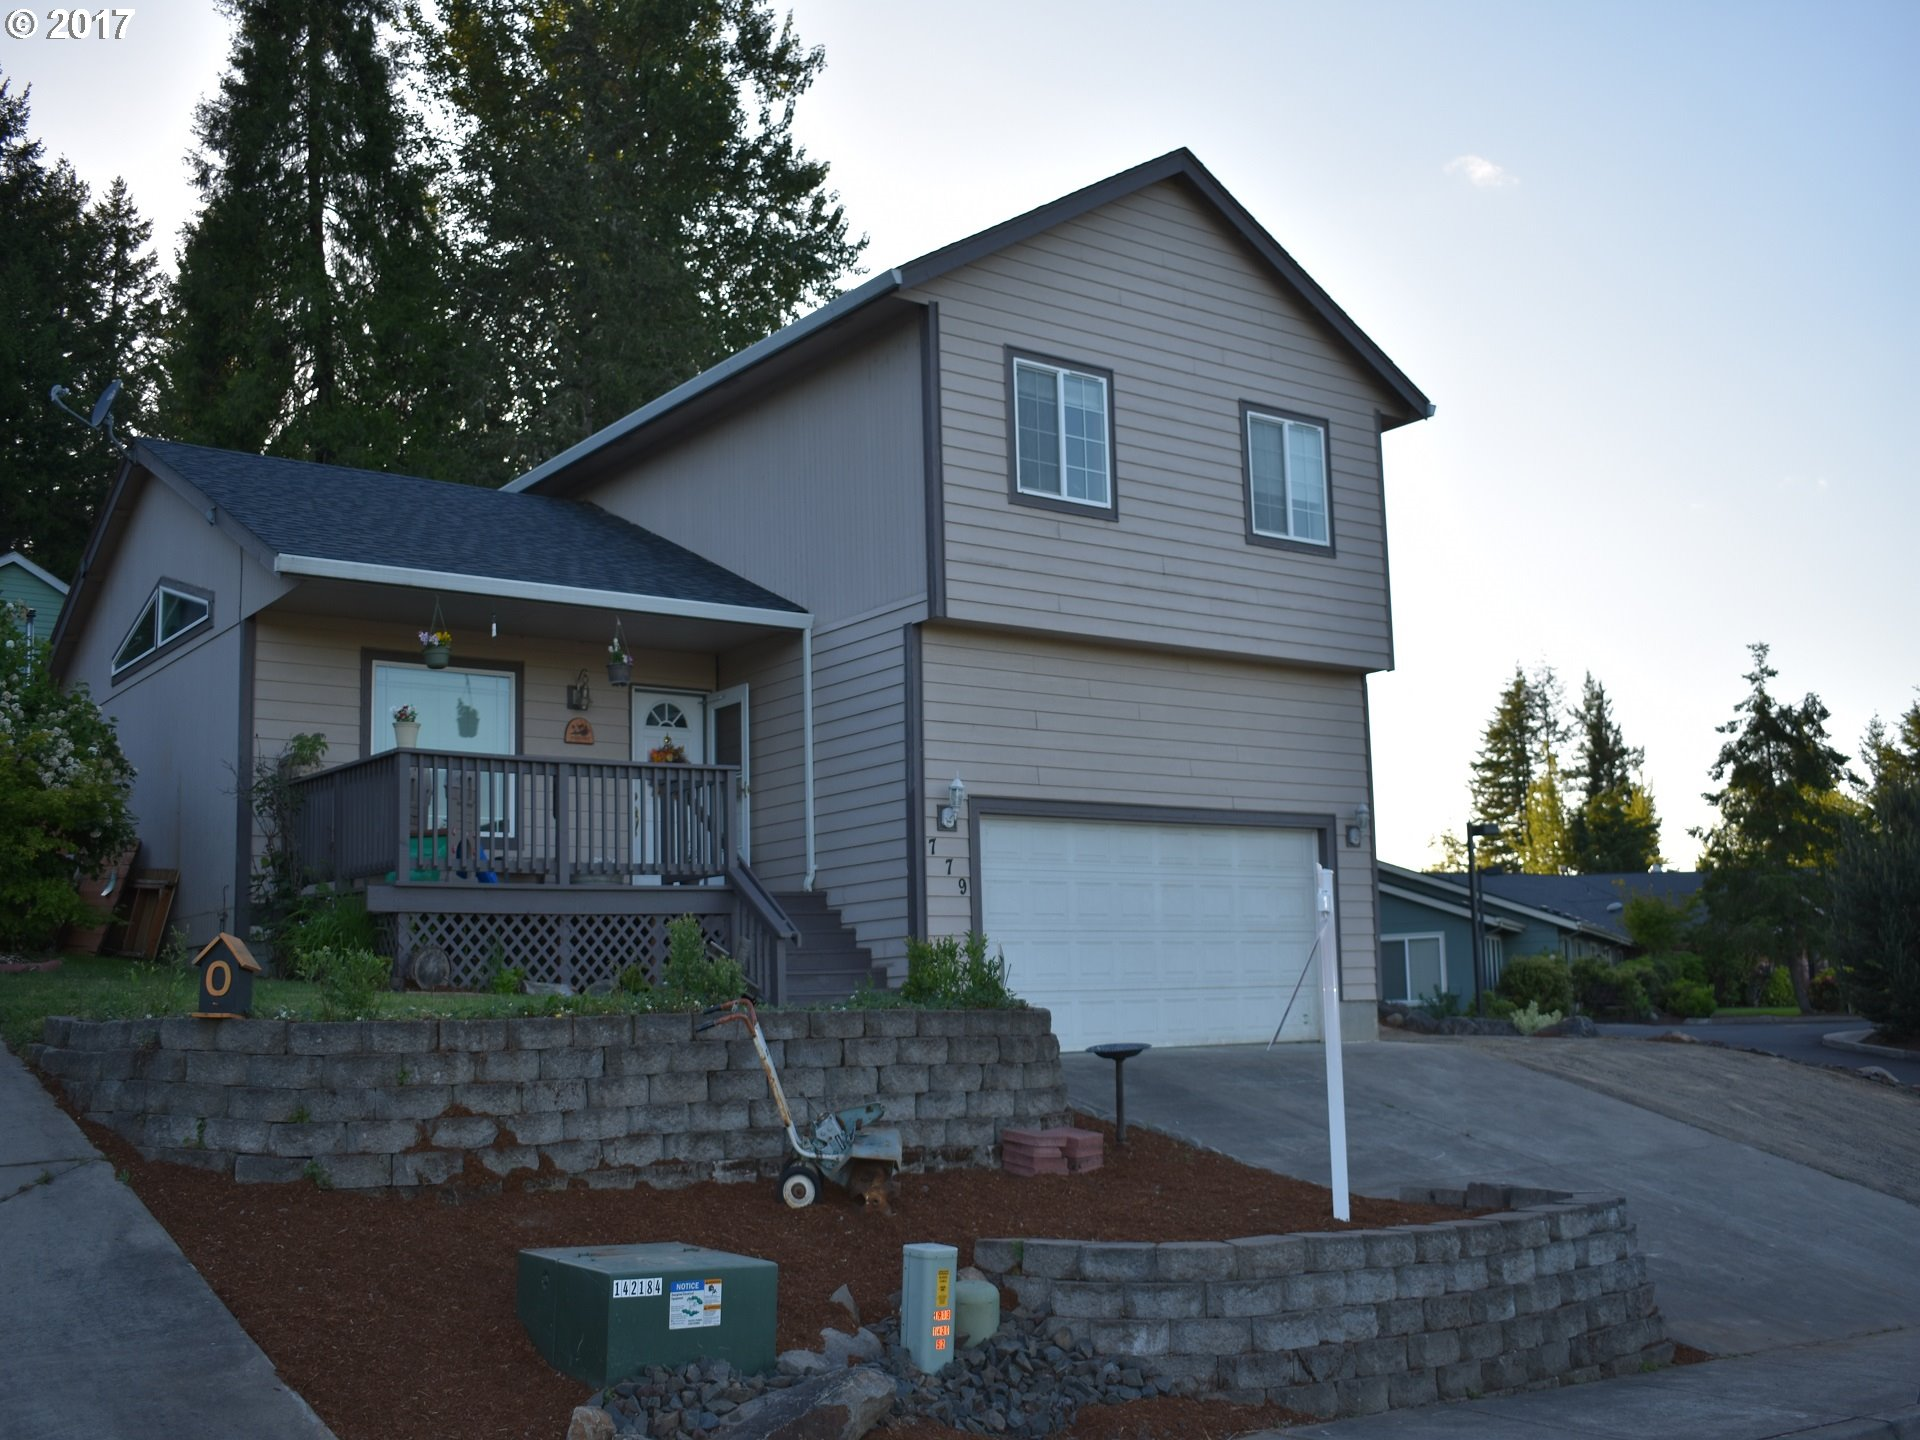 779 S 2ND ST, Creswell, OR 97426